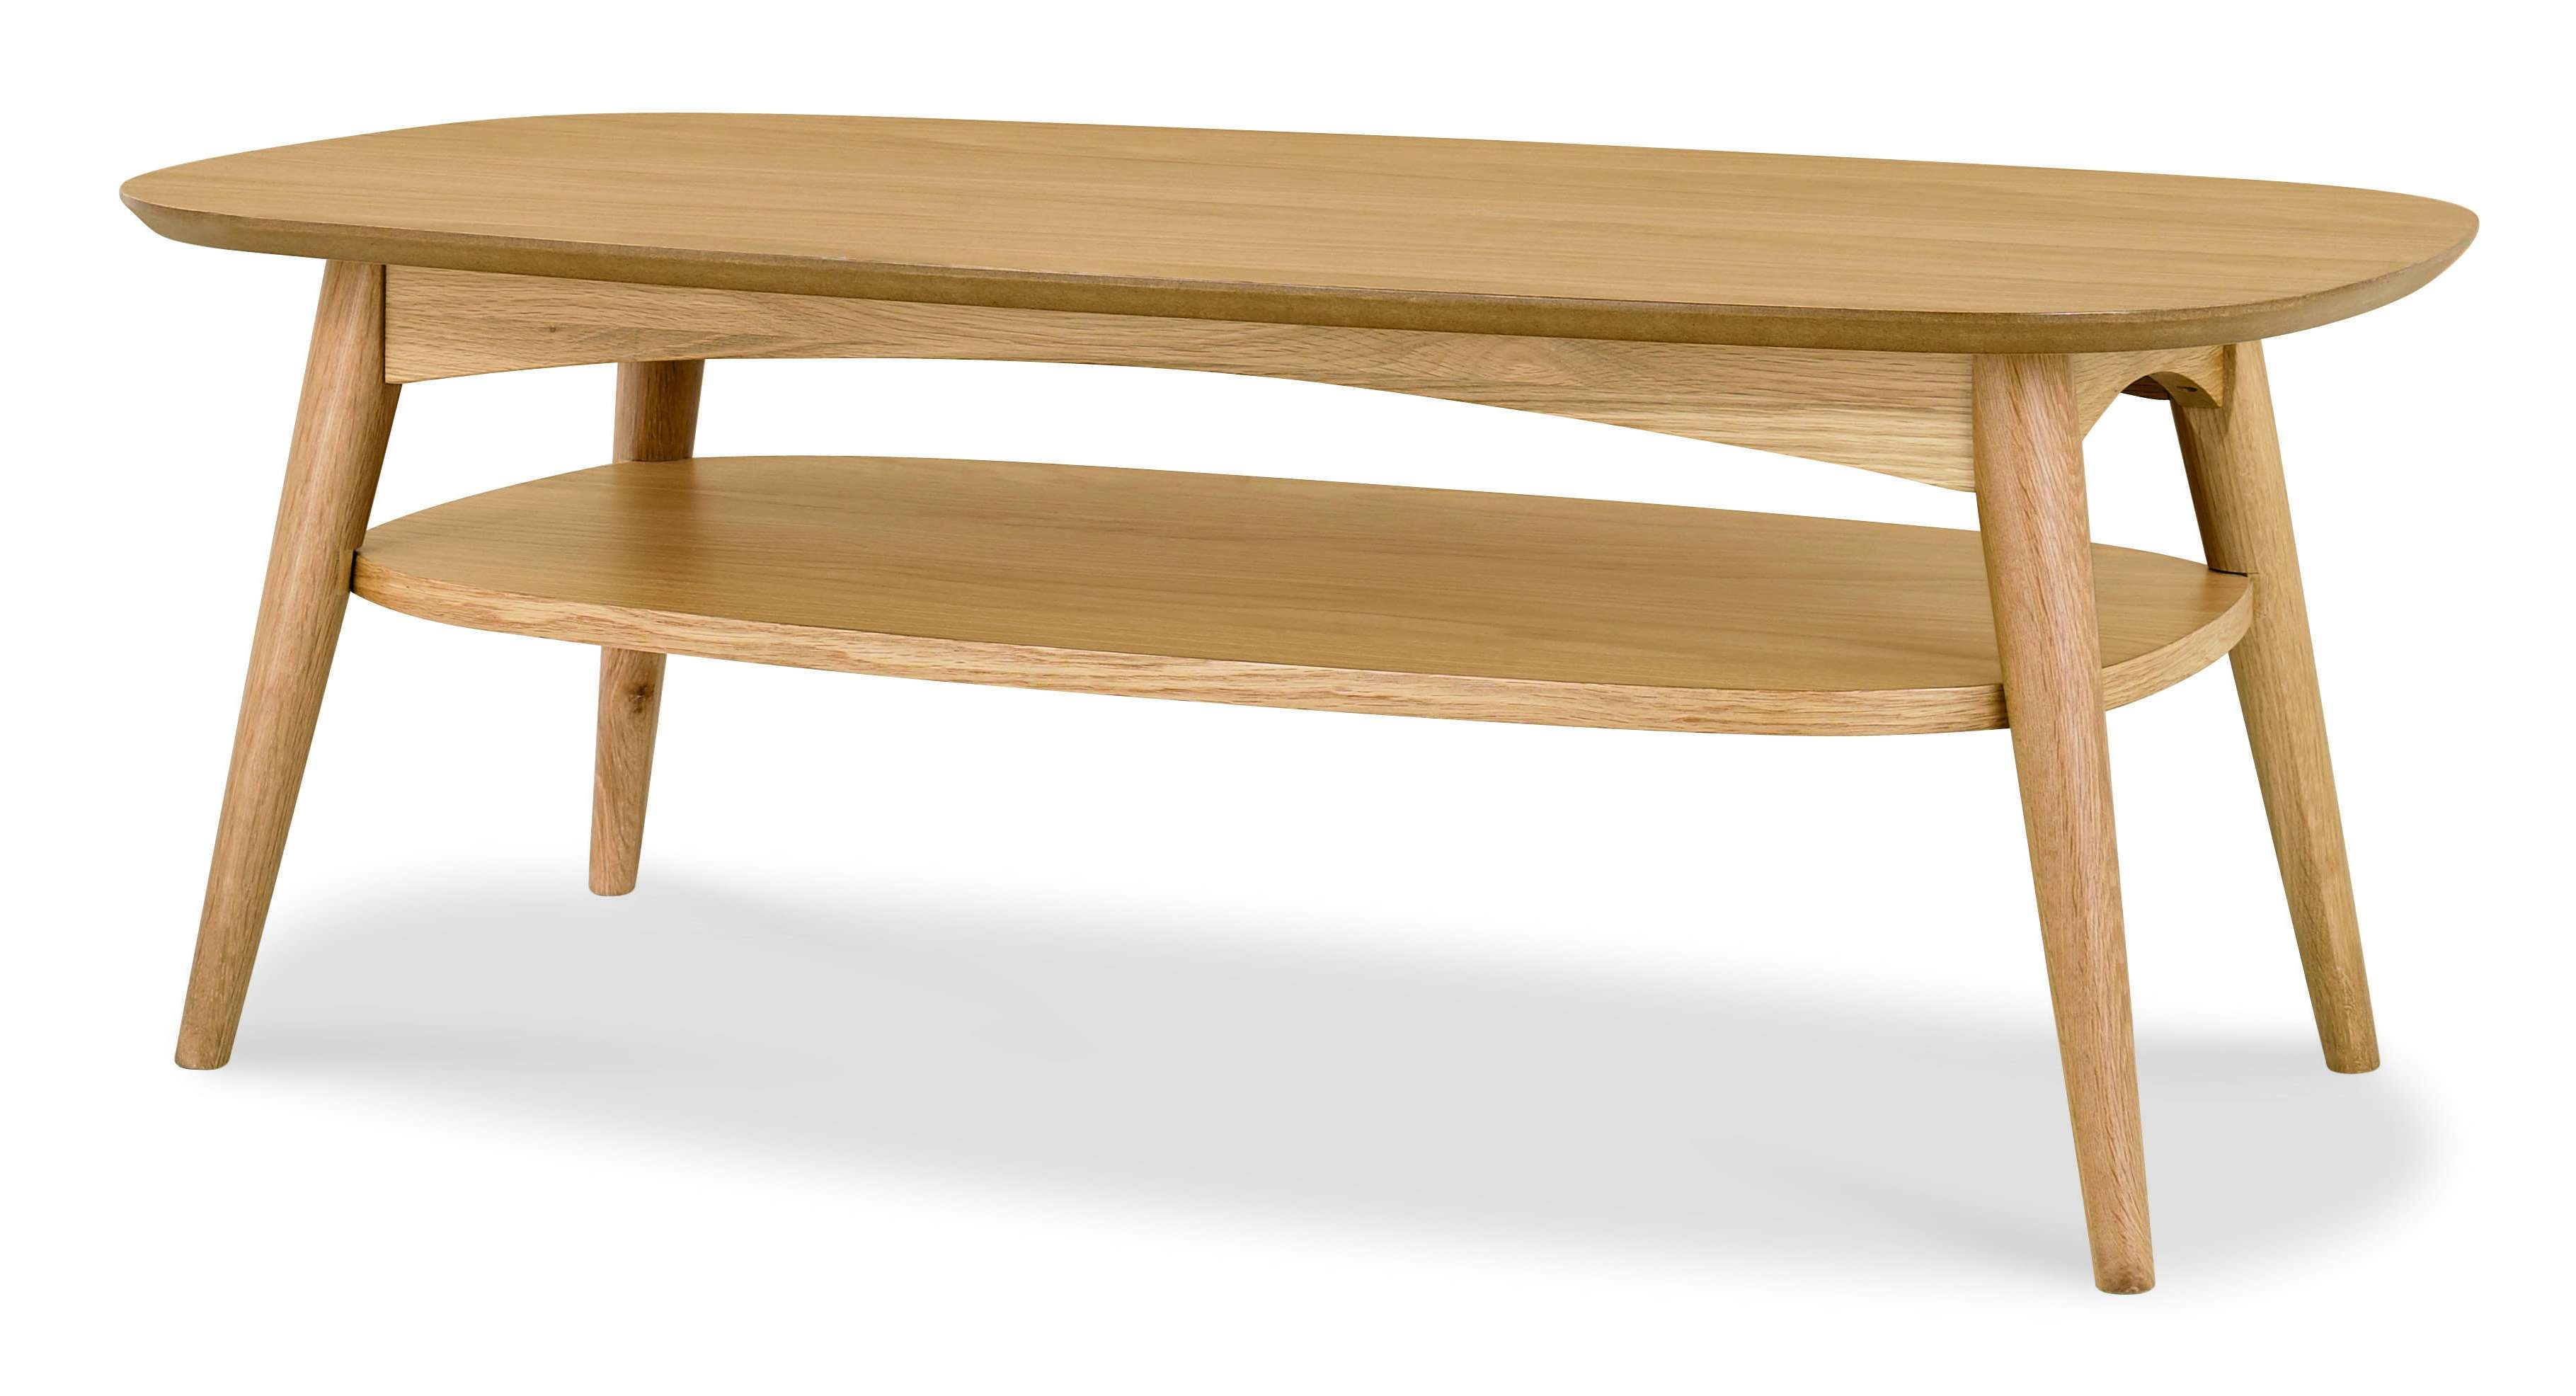 Oak Furniture Solutions For Preferred Oak Coffee Tables With Shelf (View 14 of 20)